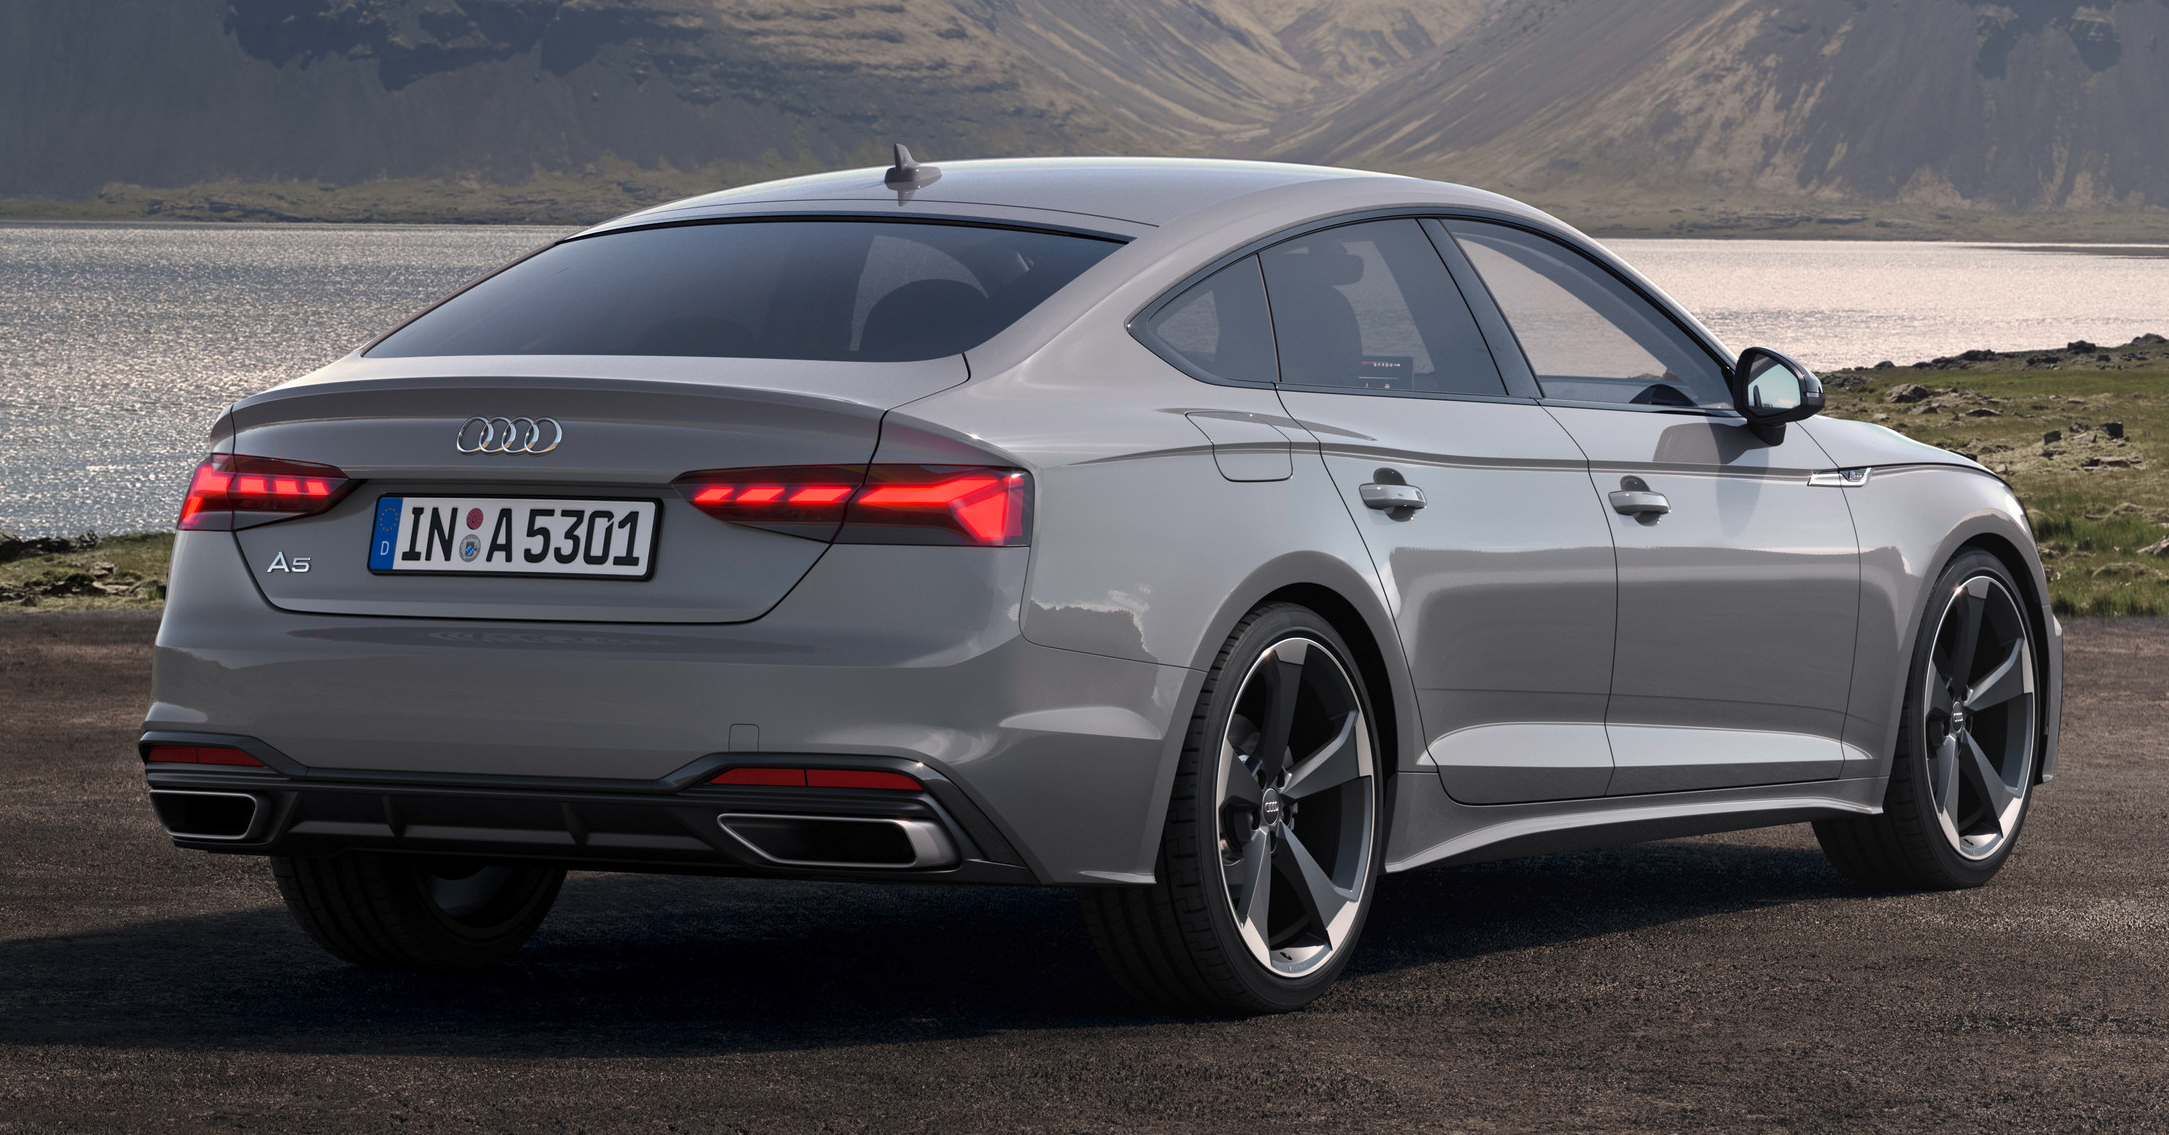 2020 audi a5, s5 facelift get updated looks and tech paul